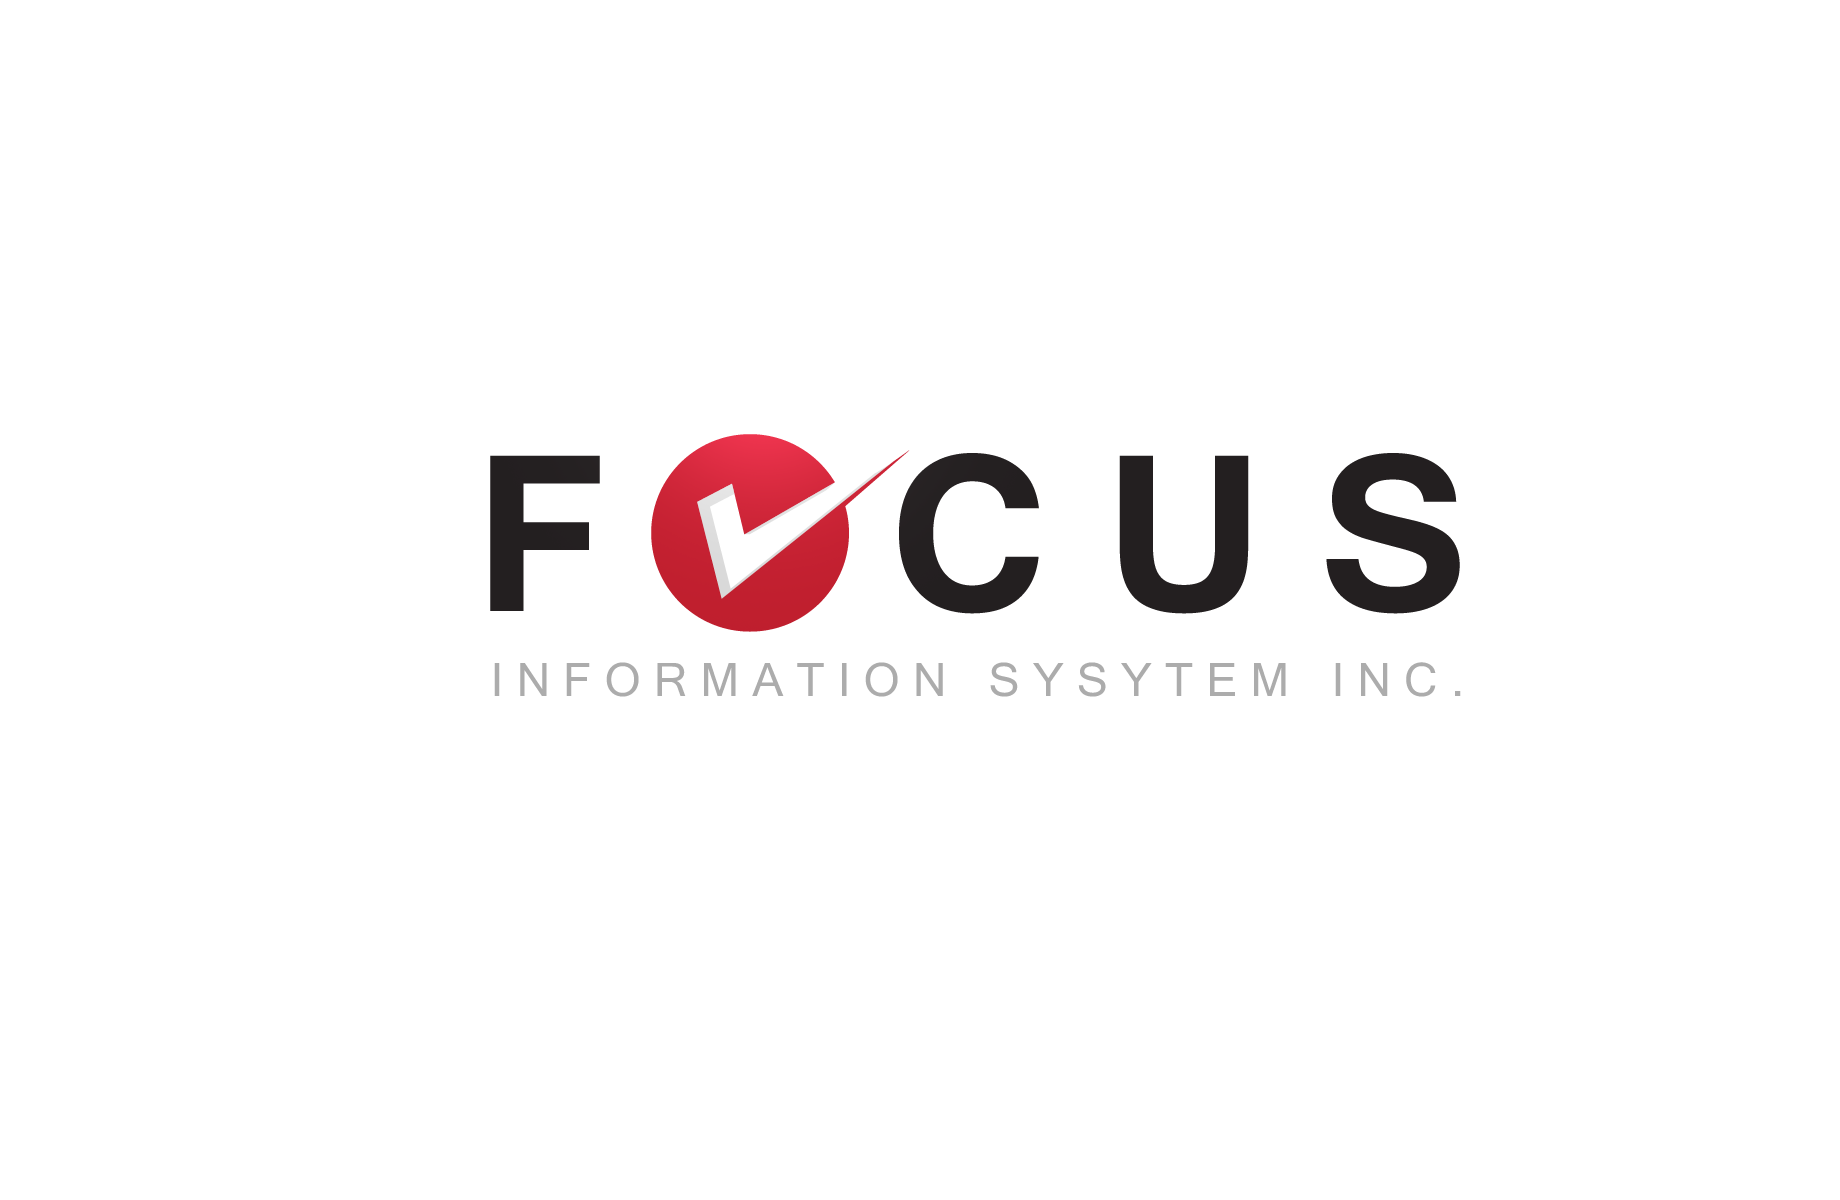 Logo Design by Jan Chua - Entry No. 9 in the Logo Design Contest Artistic Logo Design for Focus Information Systems, Inc..